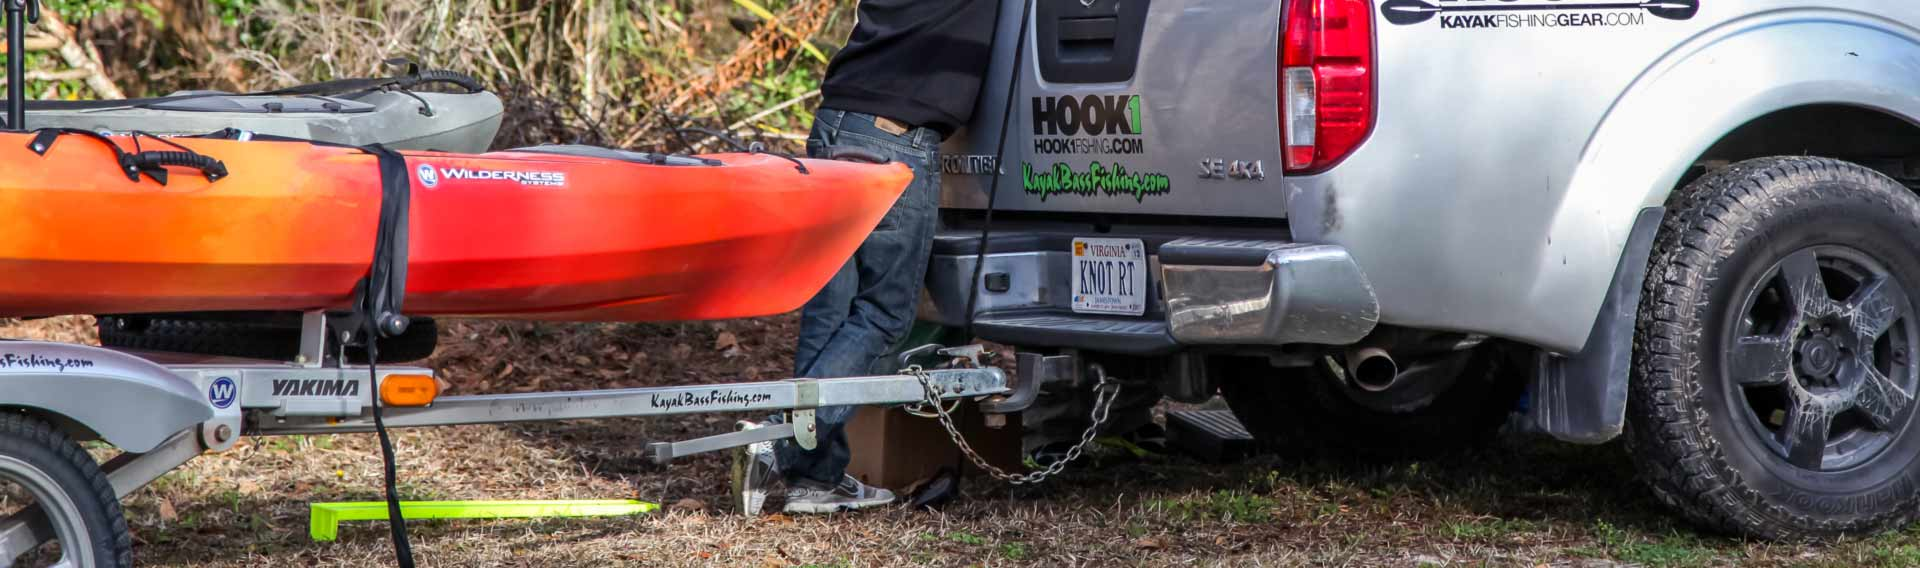 Trailer Hitch Buying Guide